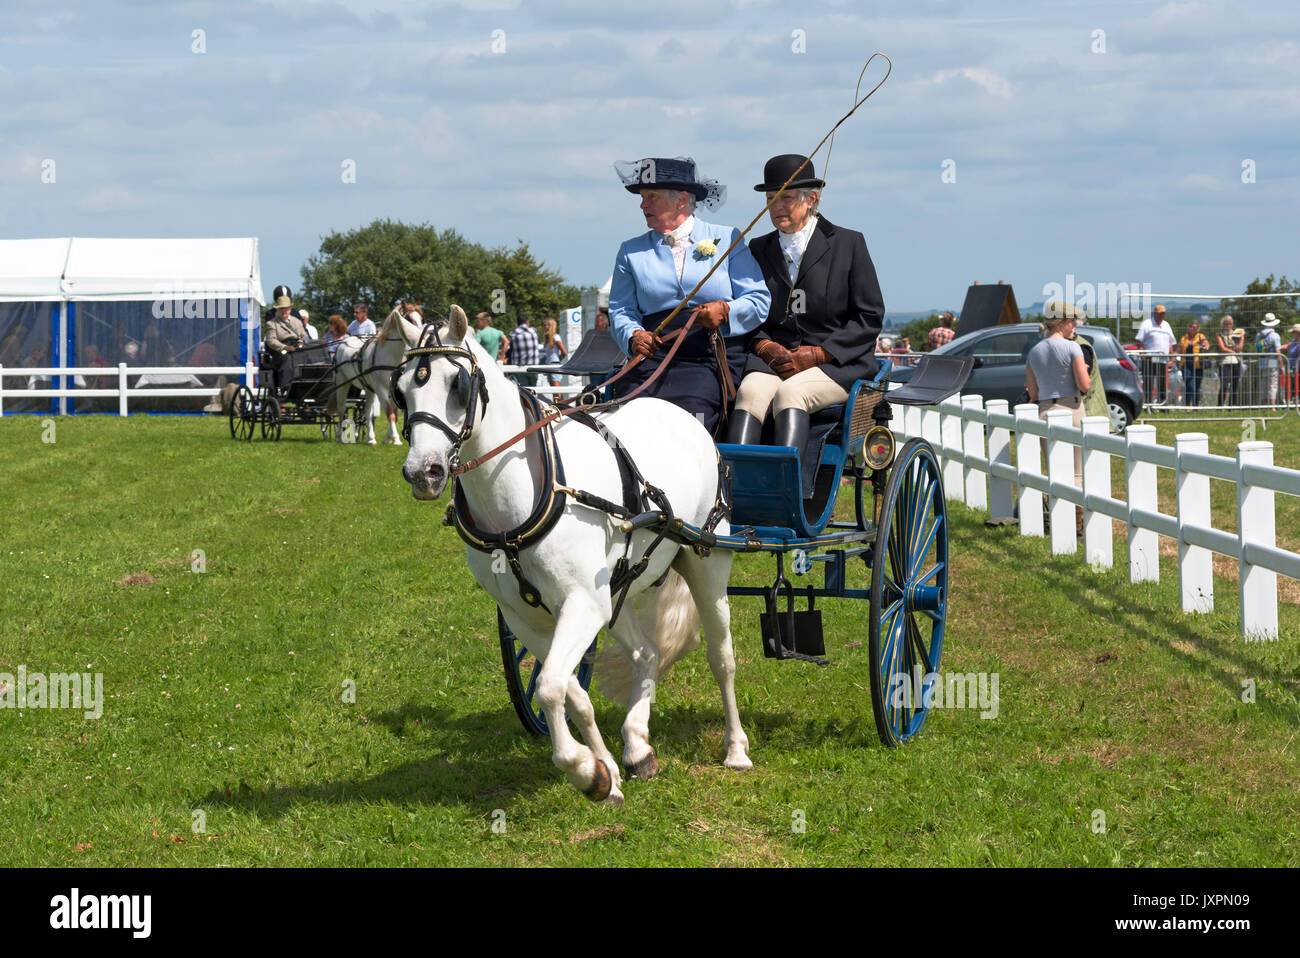 two mature ladies in a pony and trap cat at a countryside event in cornwall, england, uk. - Stock Image